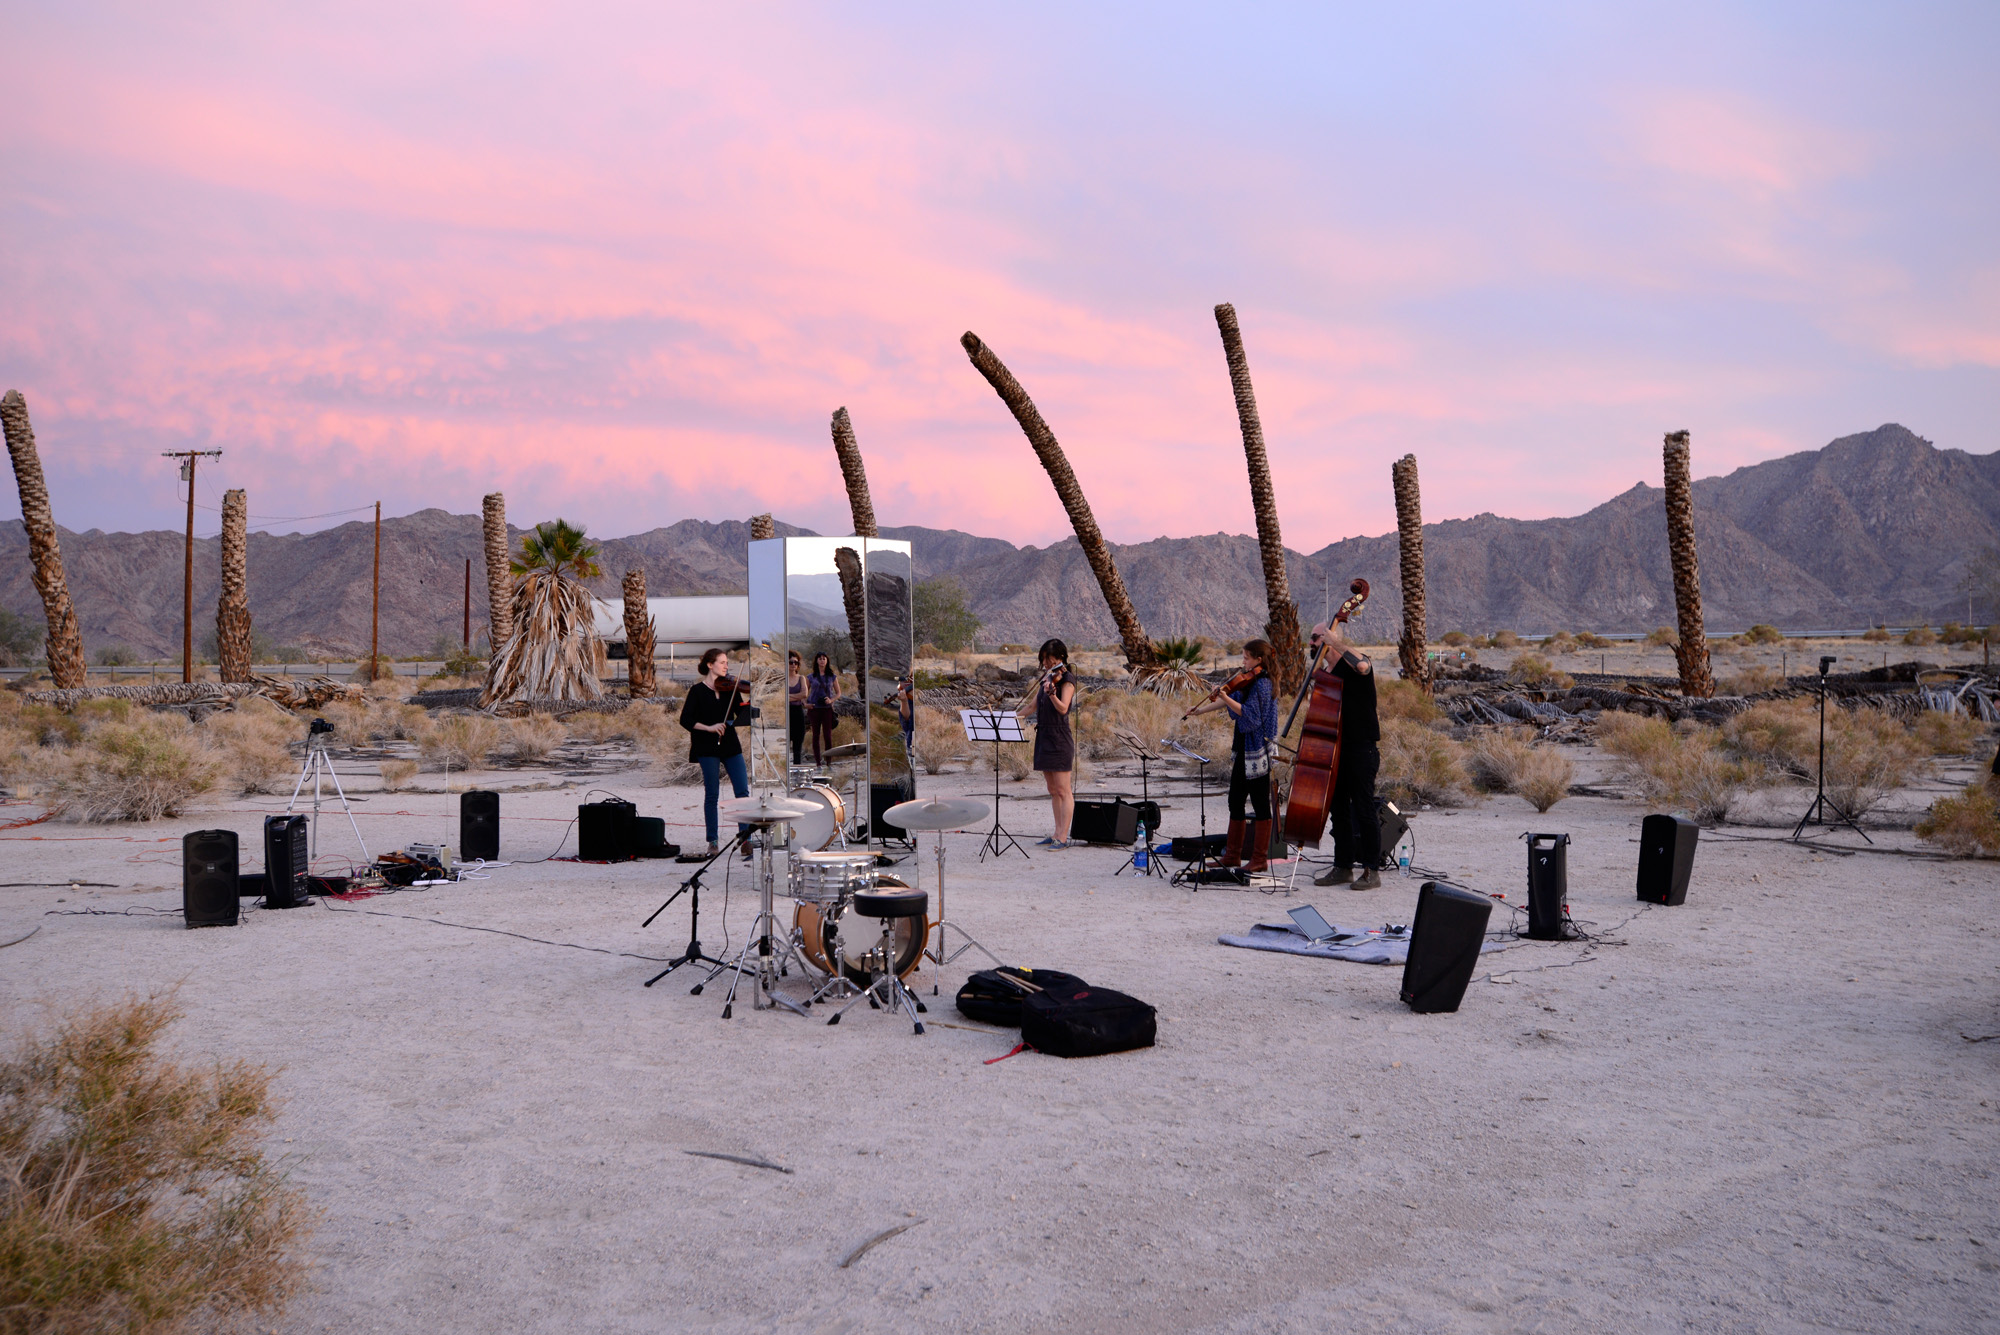 Performance by Scott Benzel, Desert Center (Composition I10 Mvmt IV: Dusk)